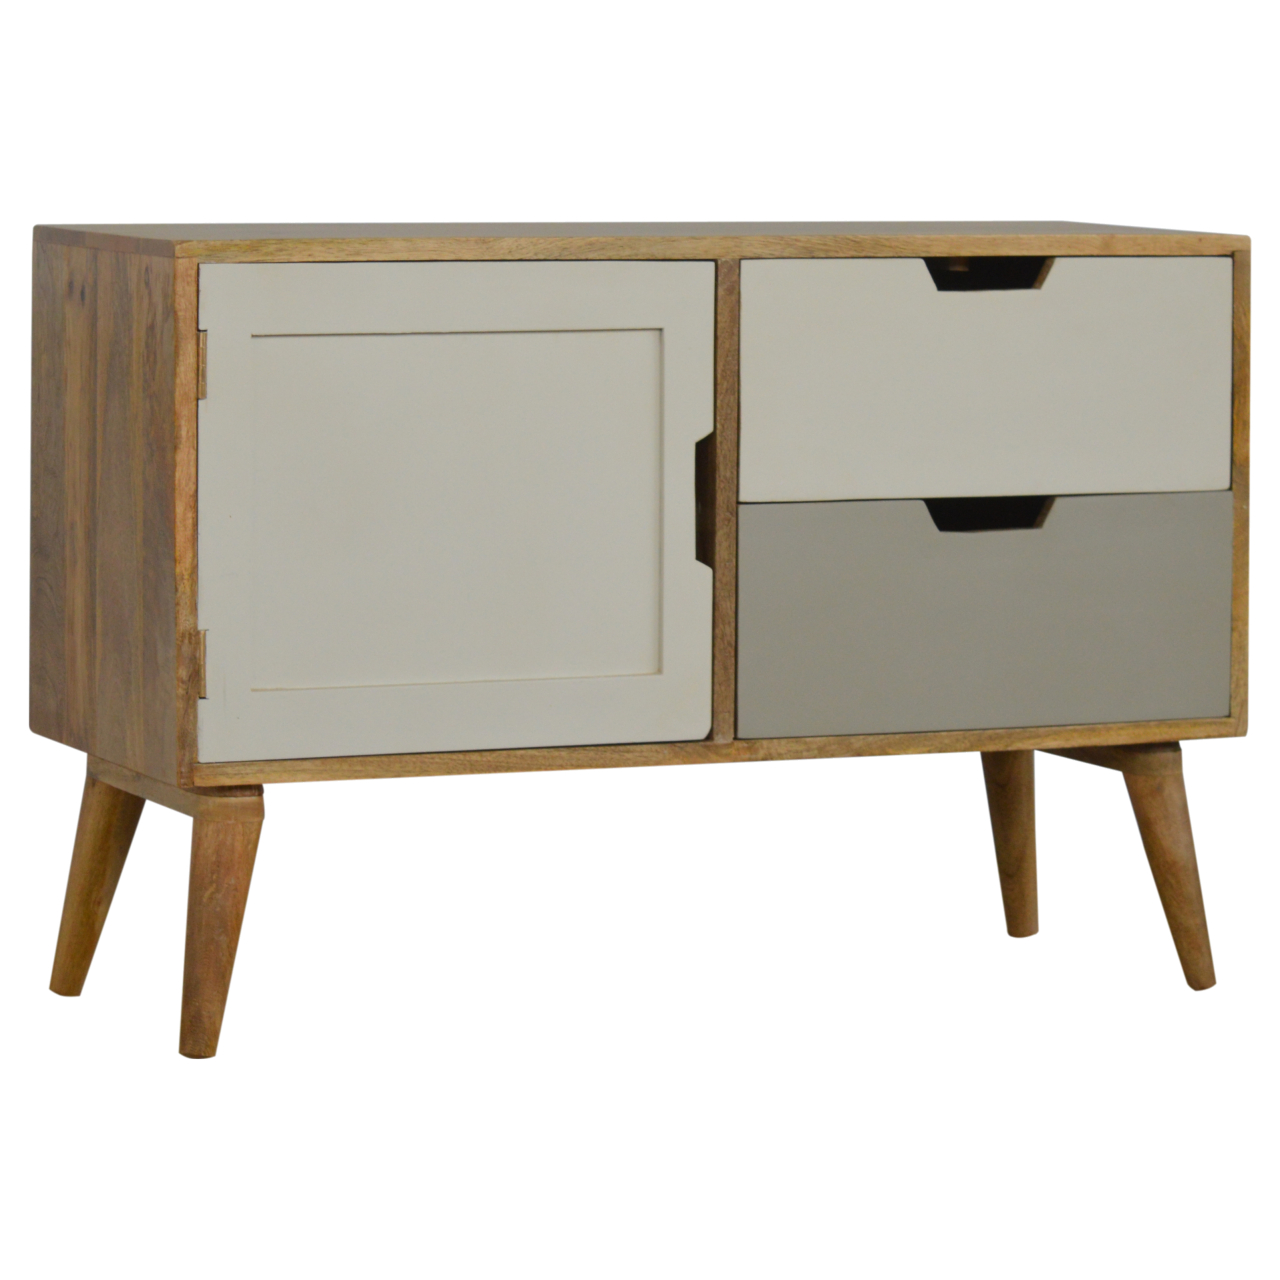 IN185 Nordic Style Media Unit with Painted Drawer Fronts